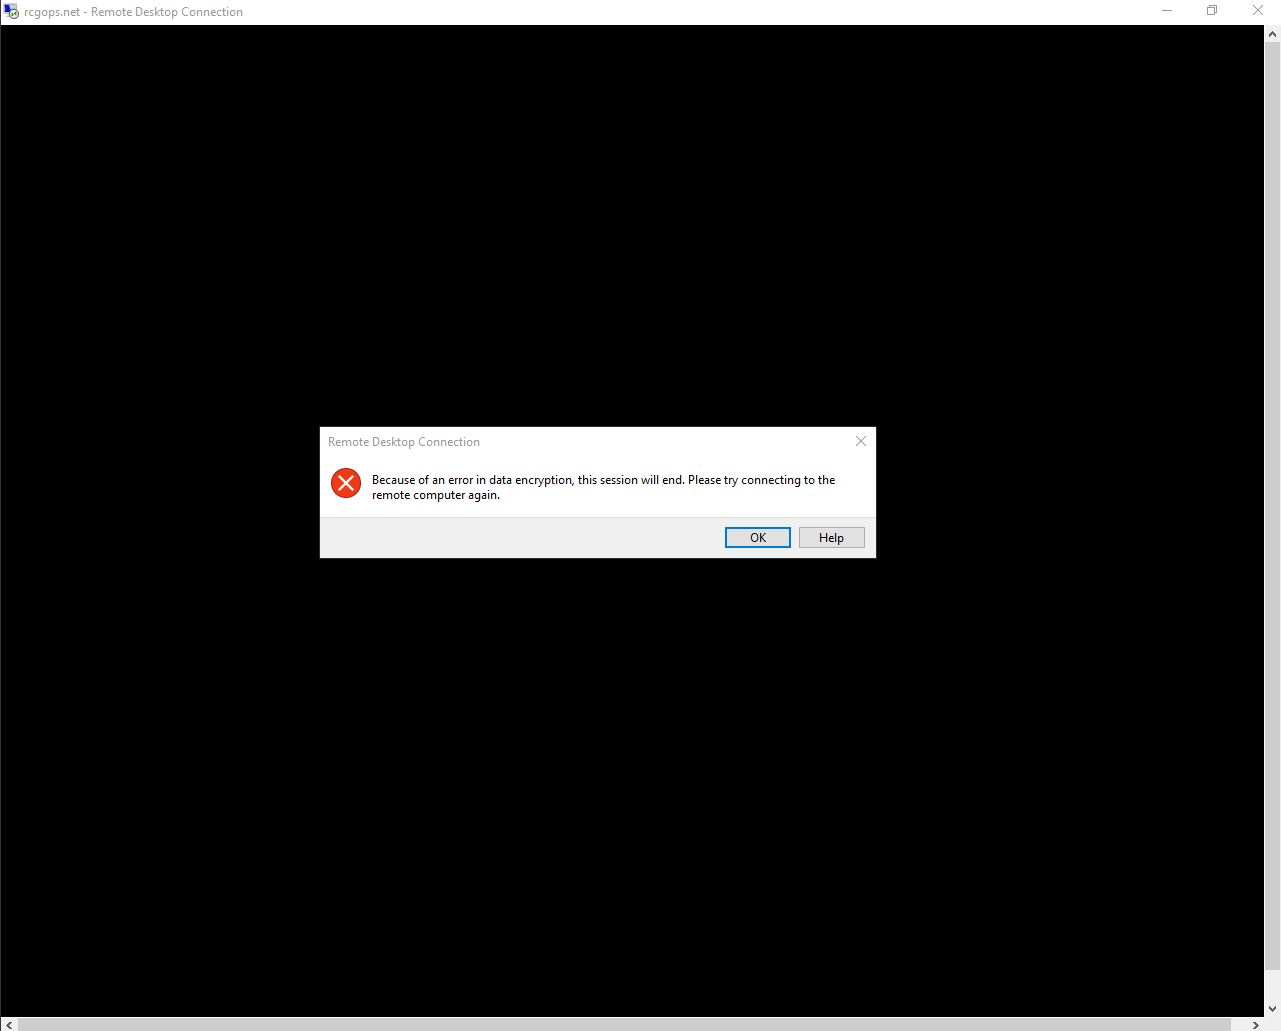 Remote Desktop Connection error with HT2000W - Page 5